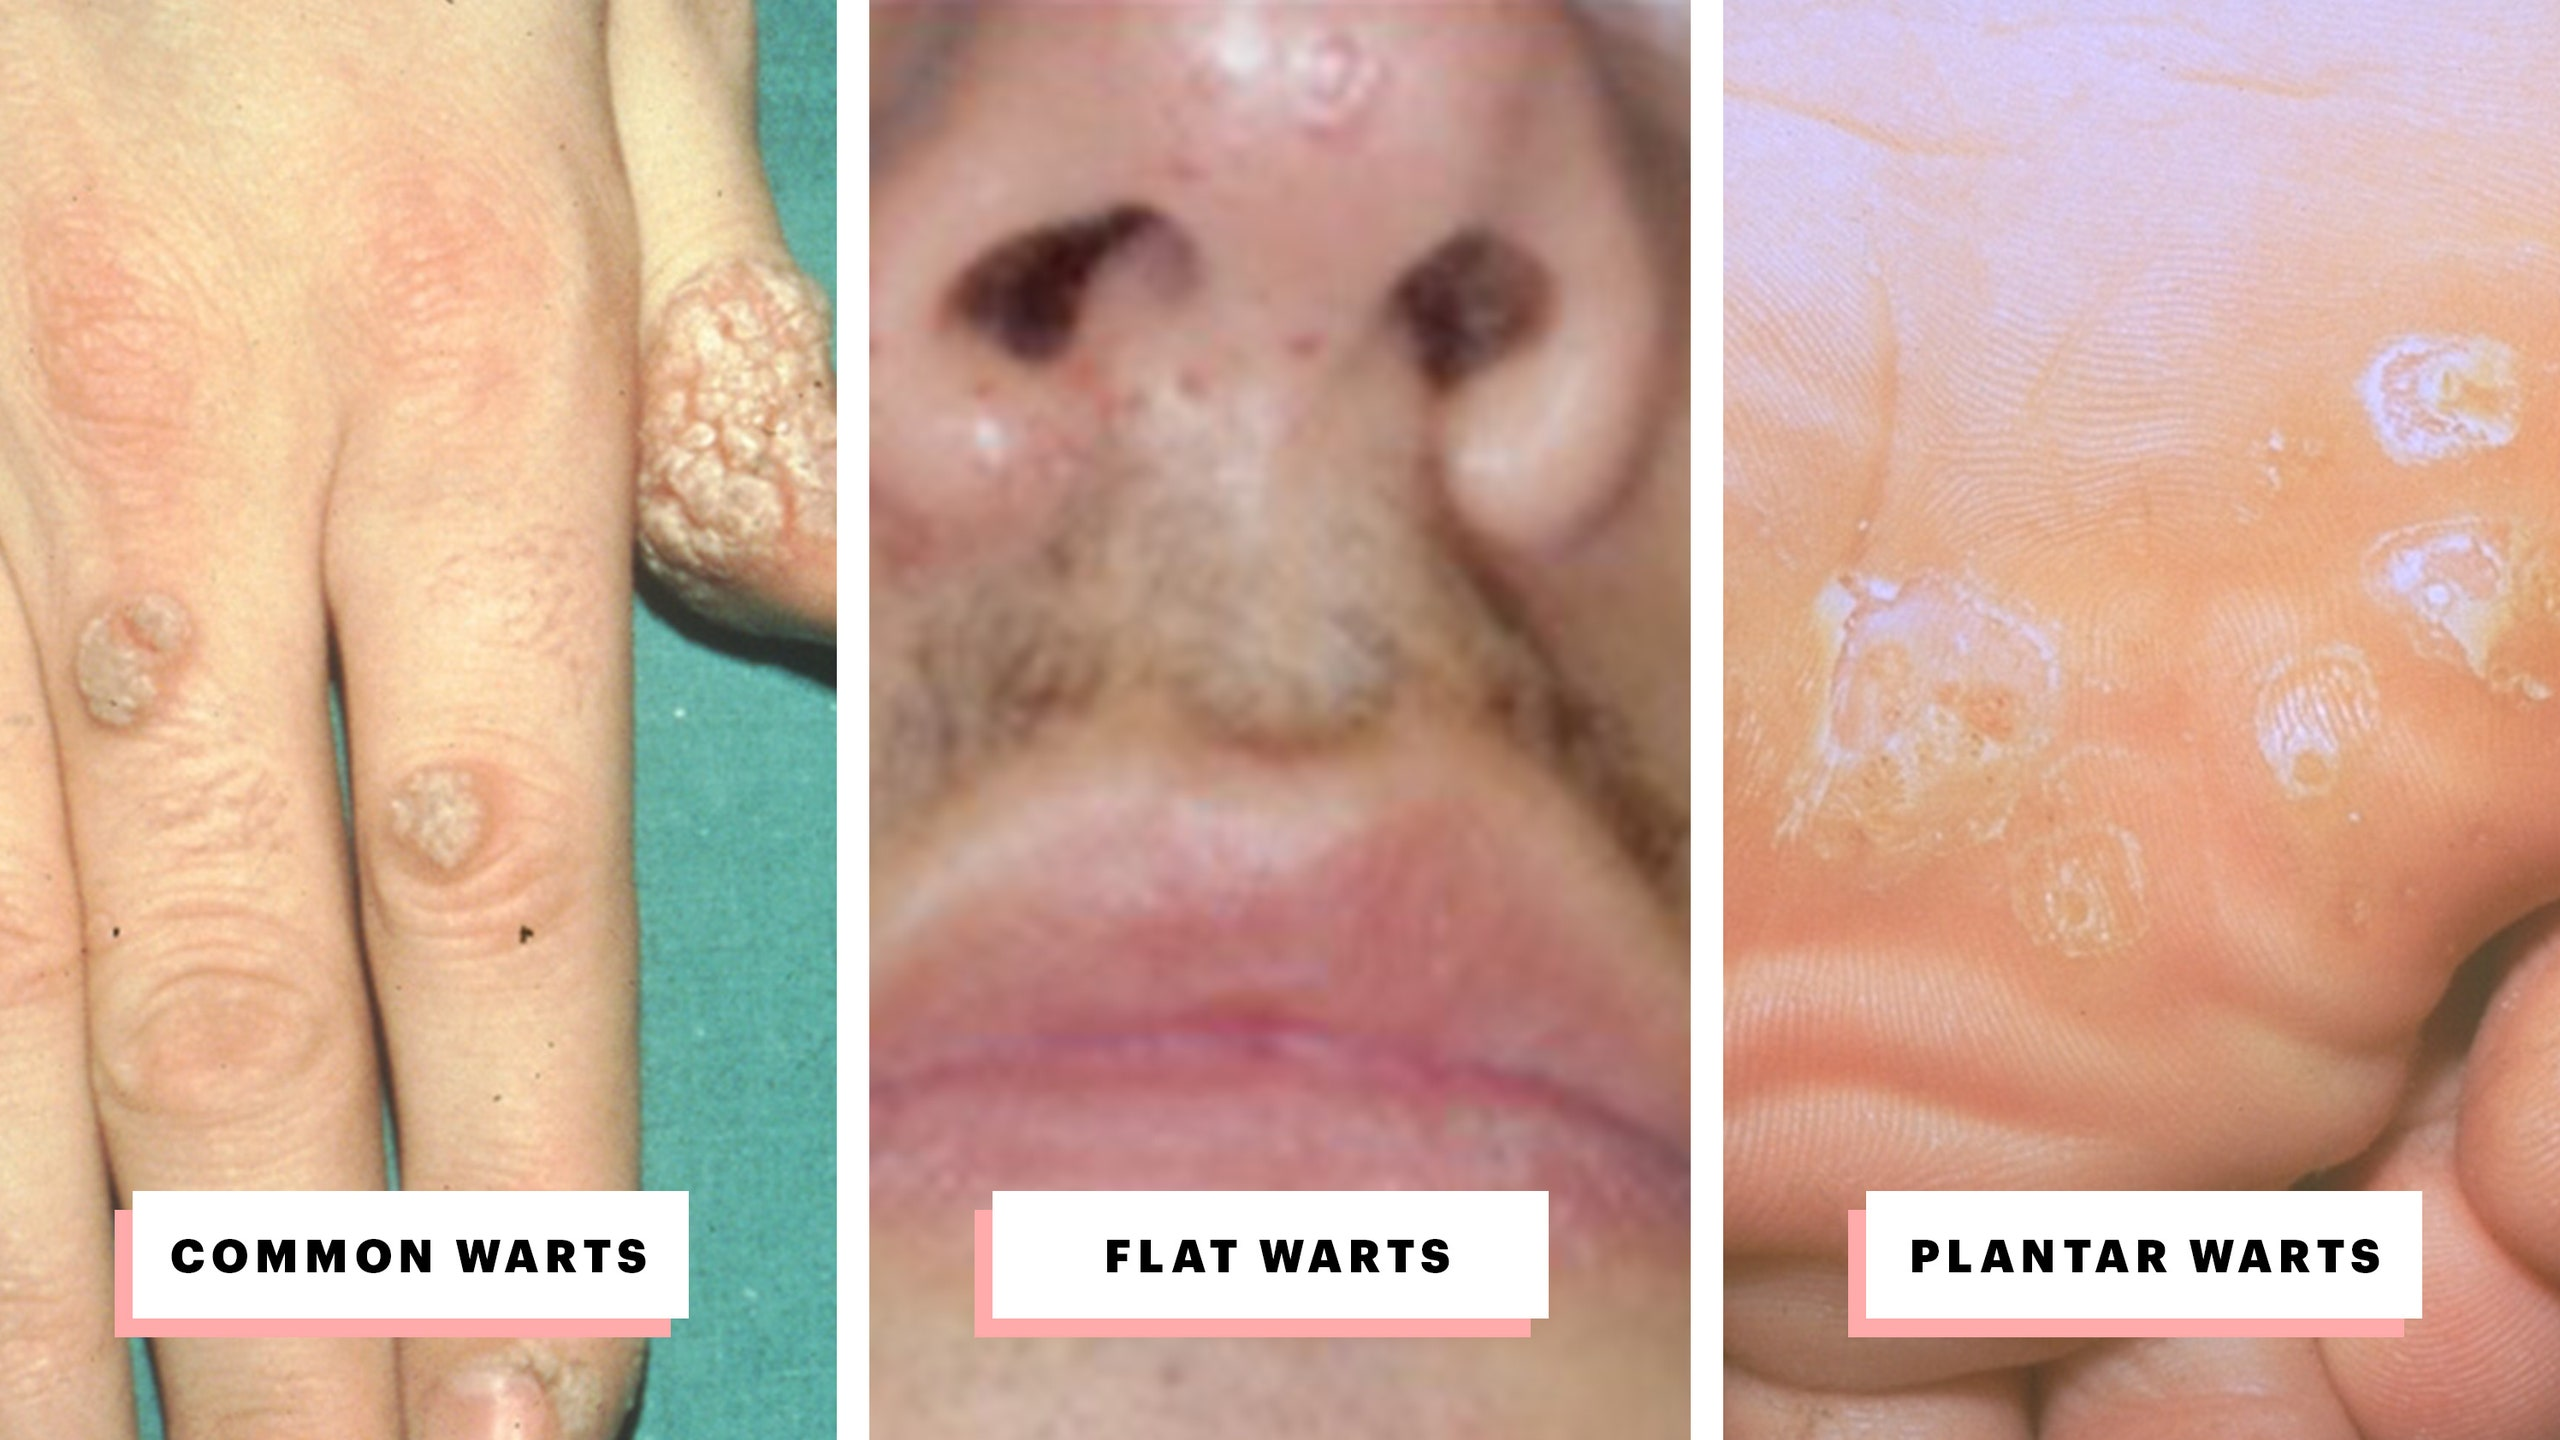 intraductal papilloma treatment in homeopathic